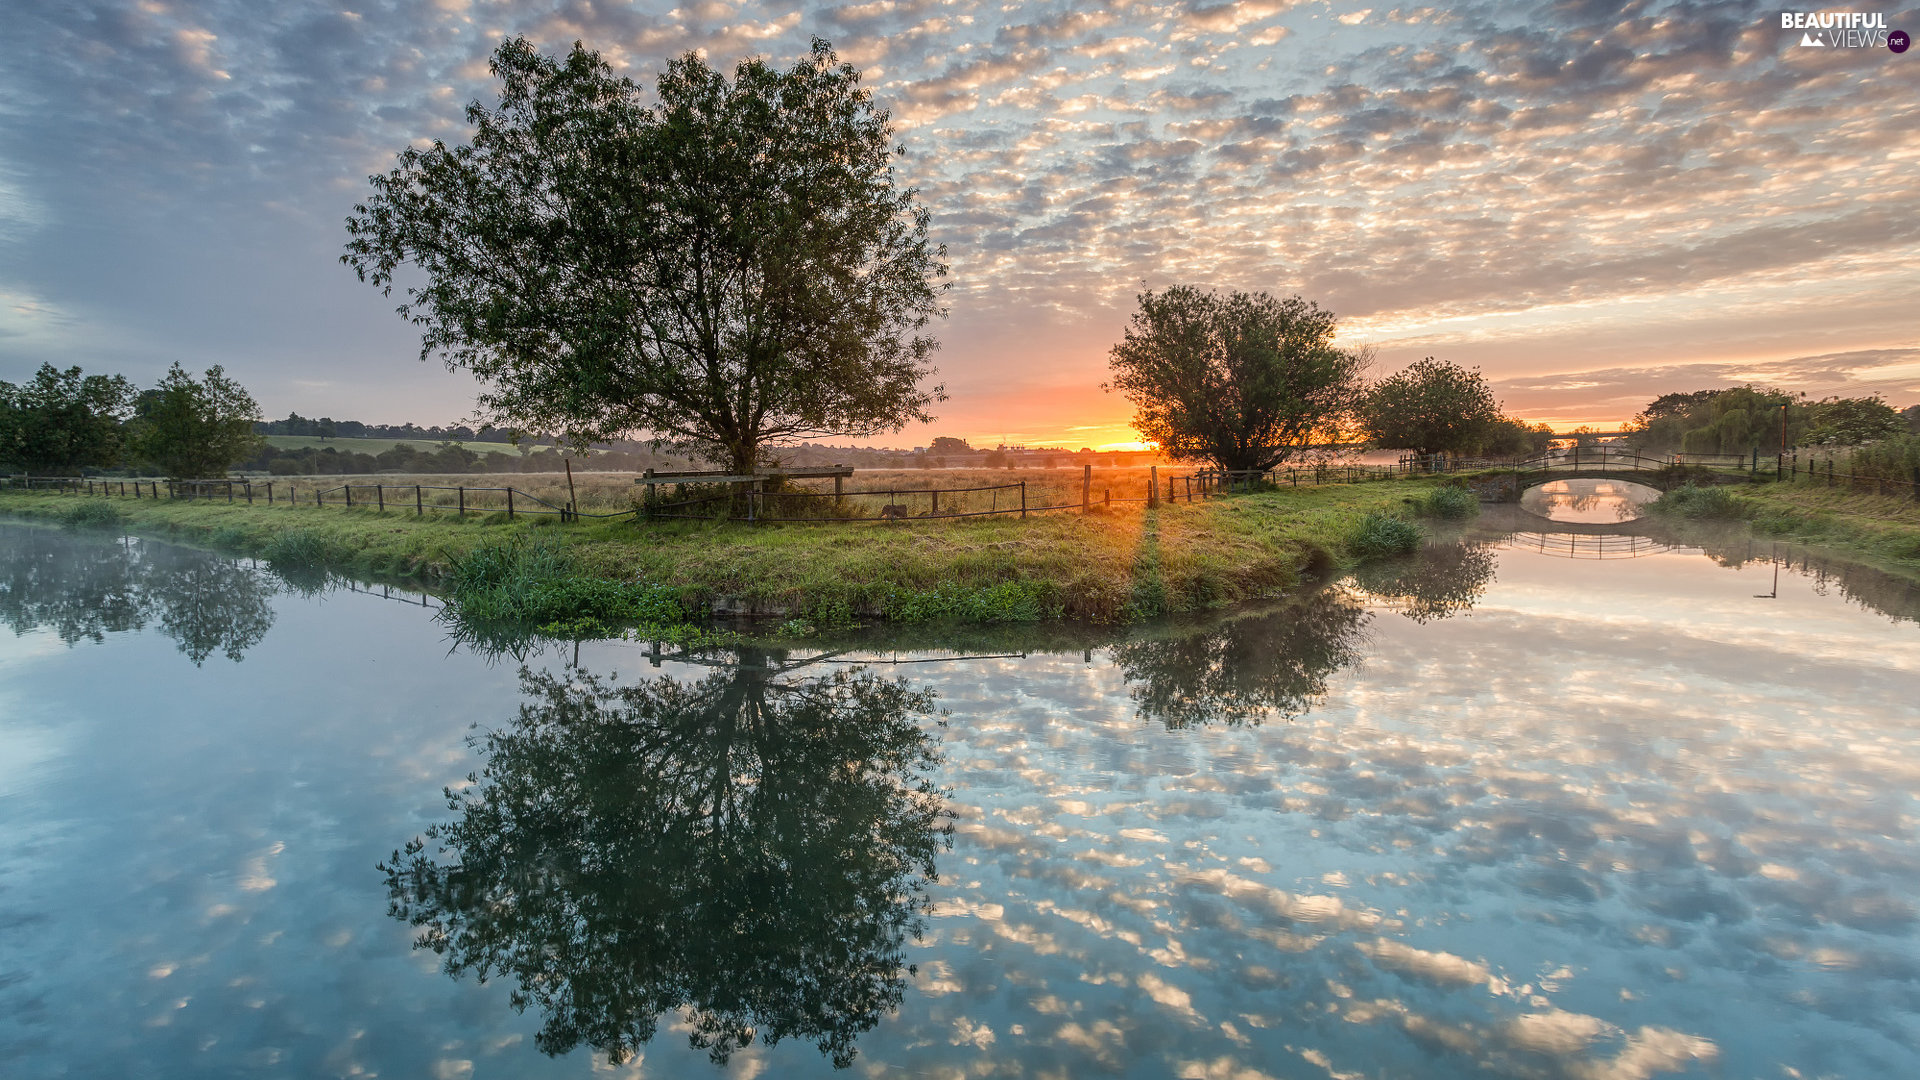 trees, River, clouds, reflection, viewes, Great Sunsets